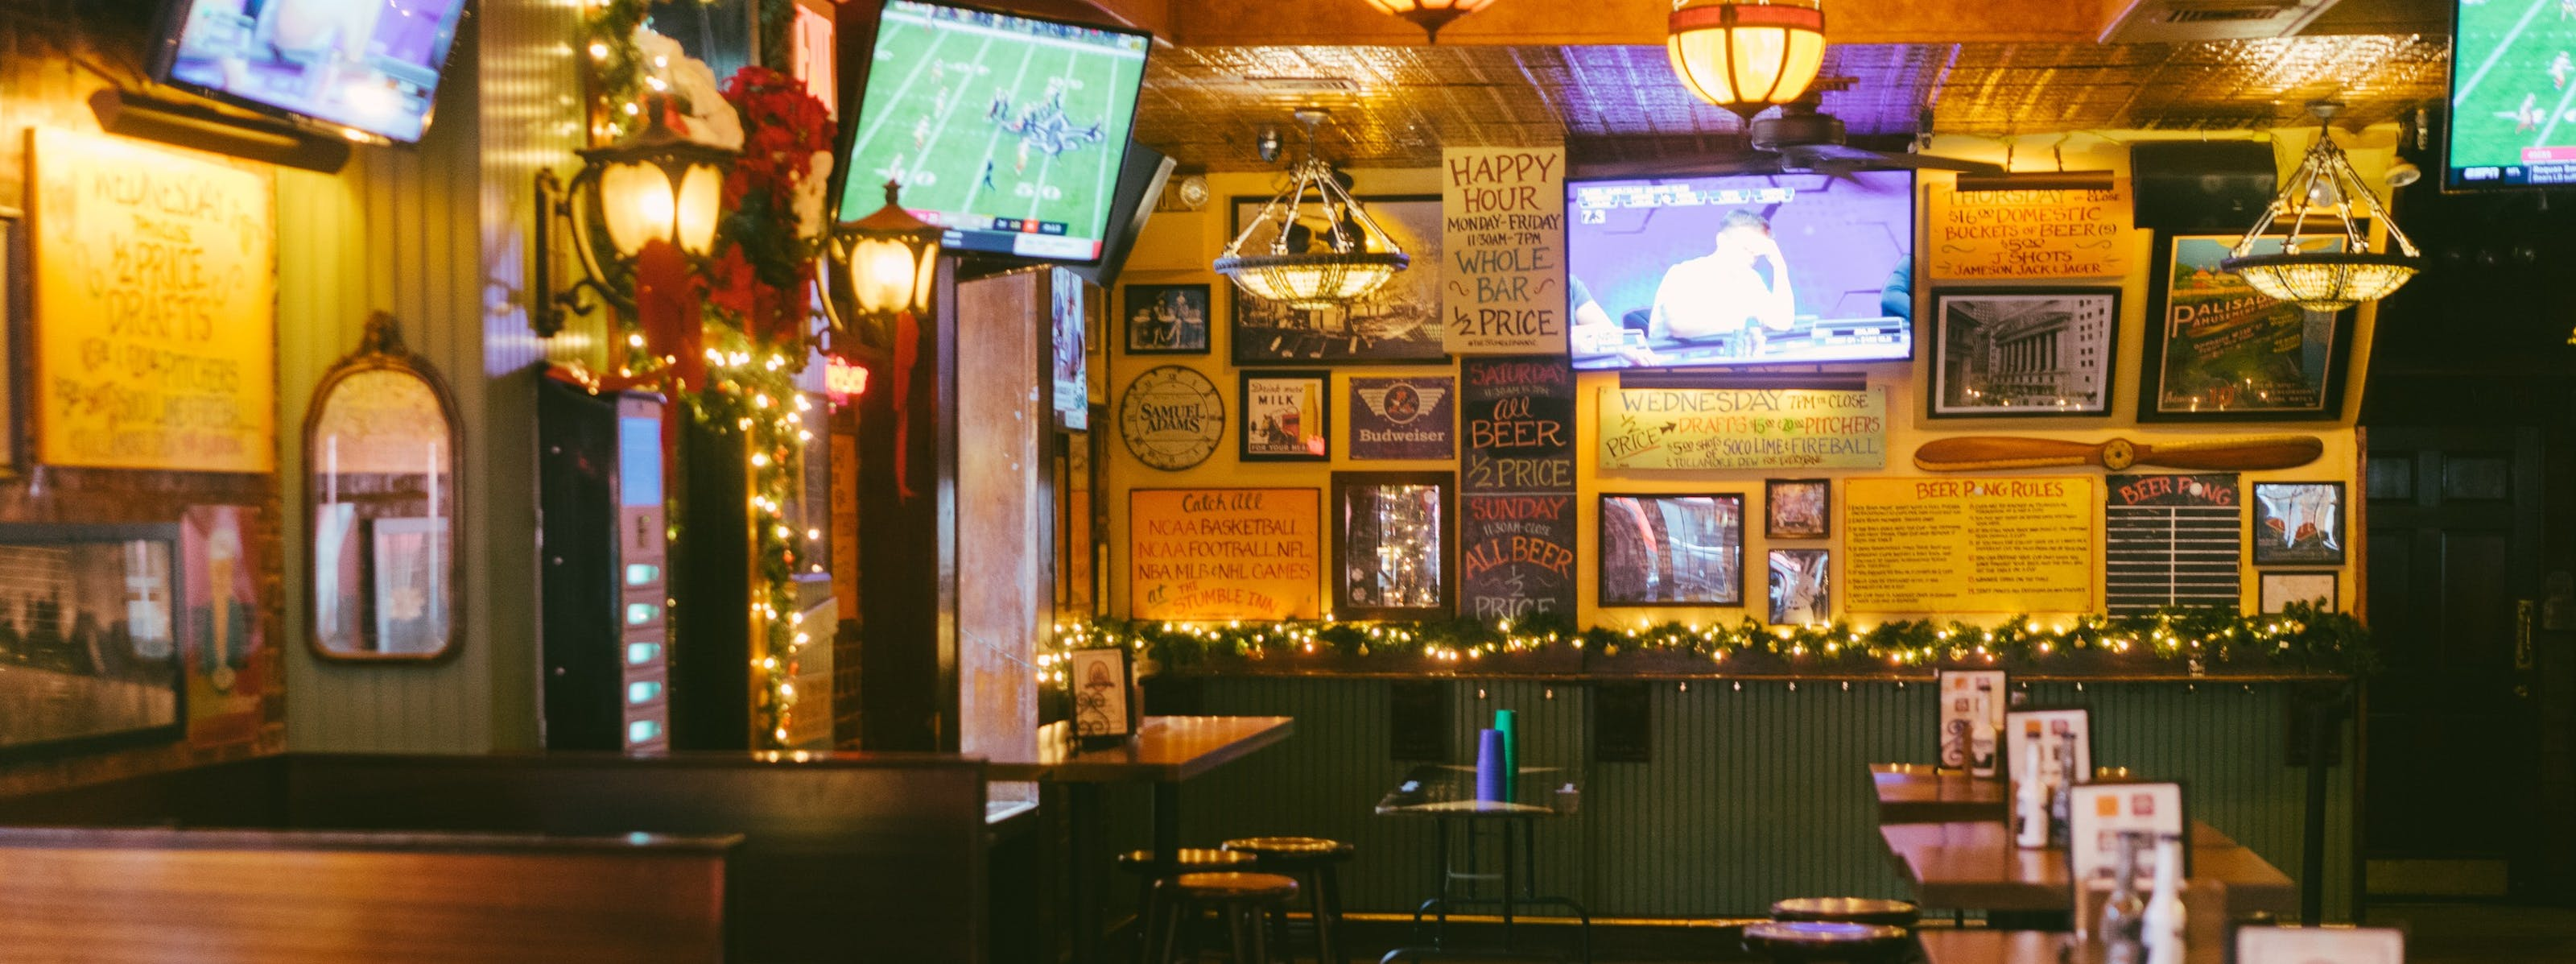 The Best Sports Bars In NYC - New York - The Infatuation